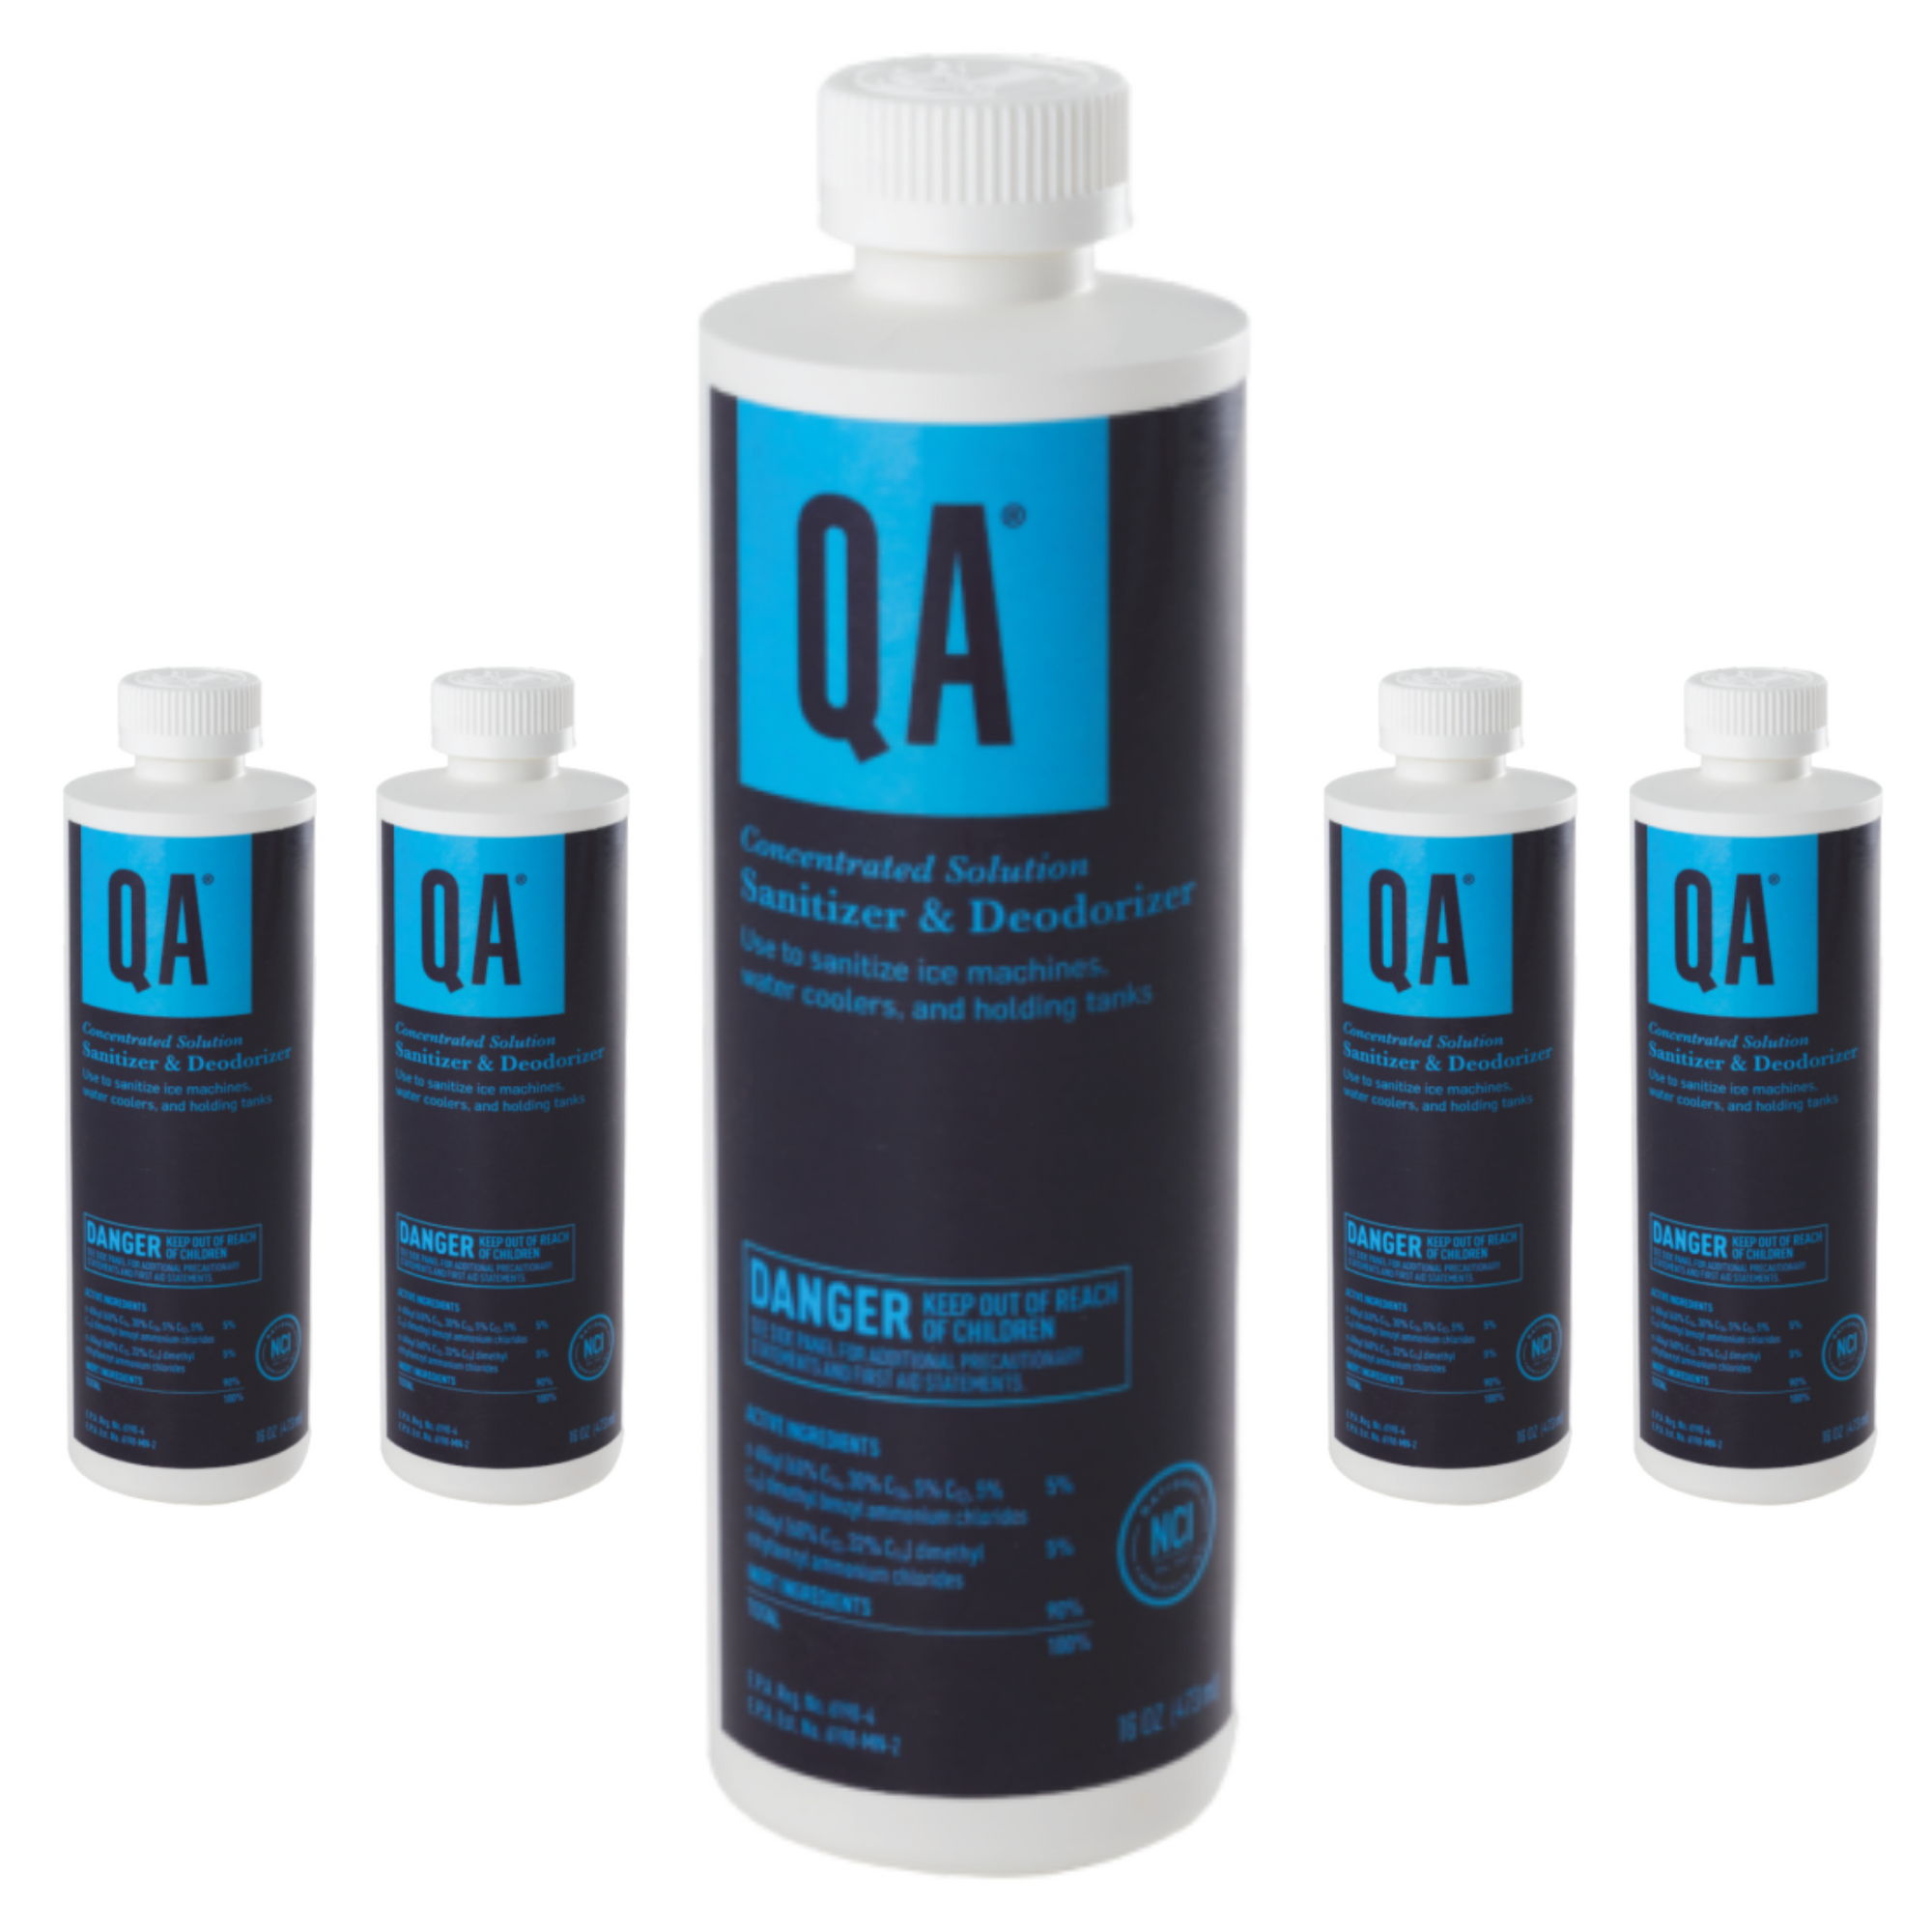 Q.A. Concentrated Solution 5-Pack Bundle - Effective Disinfectant, Deodorizer, and Sanitizer, 4oz – 5 pack